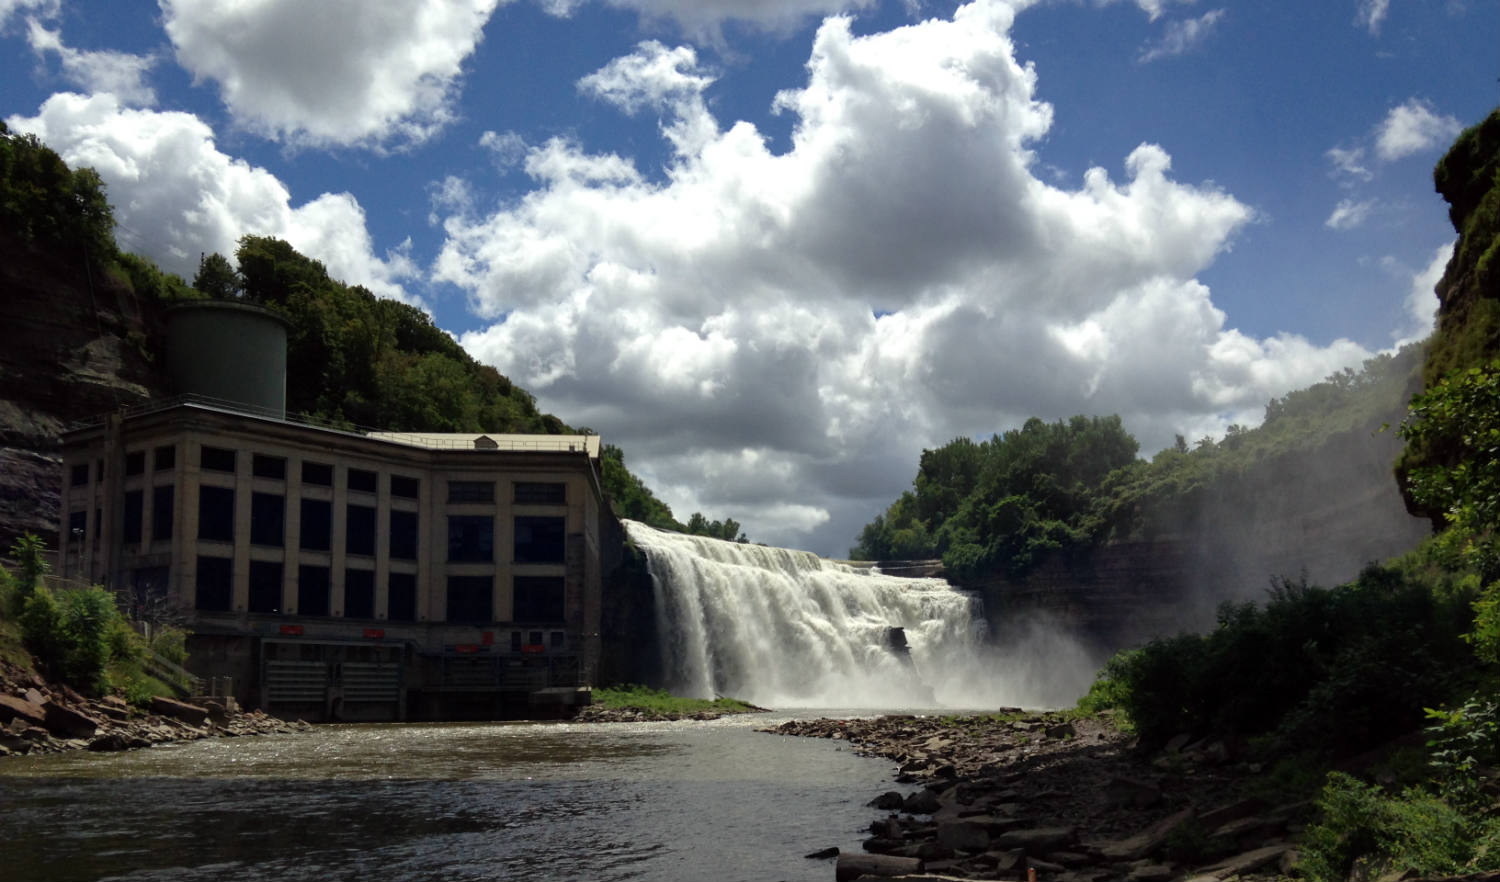 A hydroelectric power plant owned by Rochester Gas and Electric on the banks of Lower Falls Gorge located in Rochester, New York